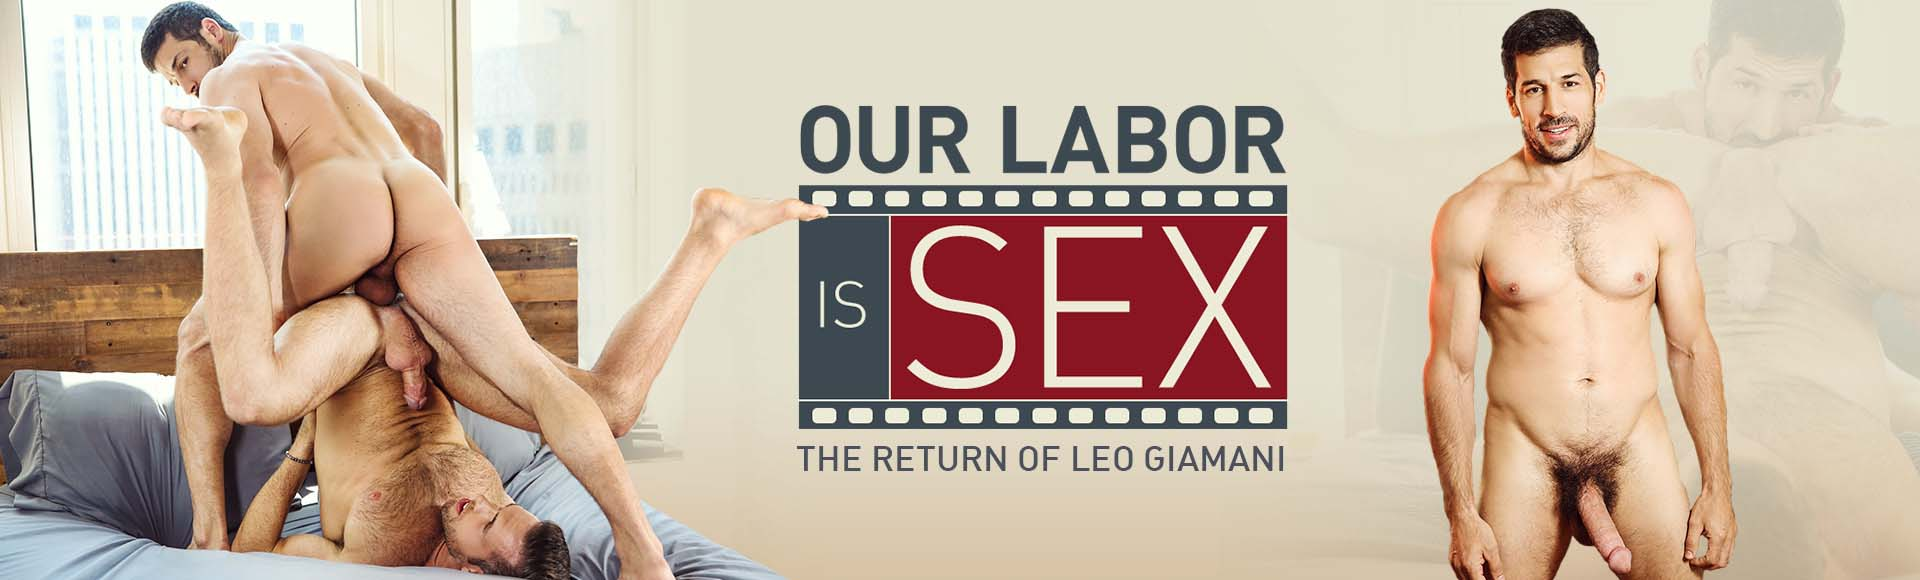 Our Labor is Sex Part 2 Featuring Alex Mecum and Leo Giomani